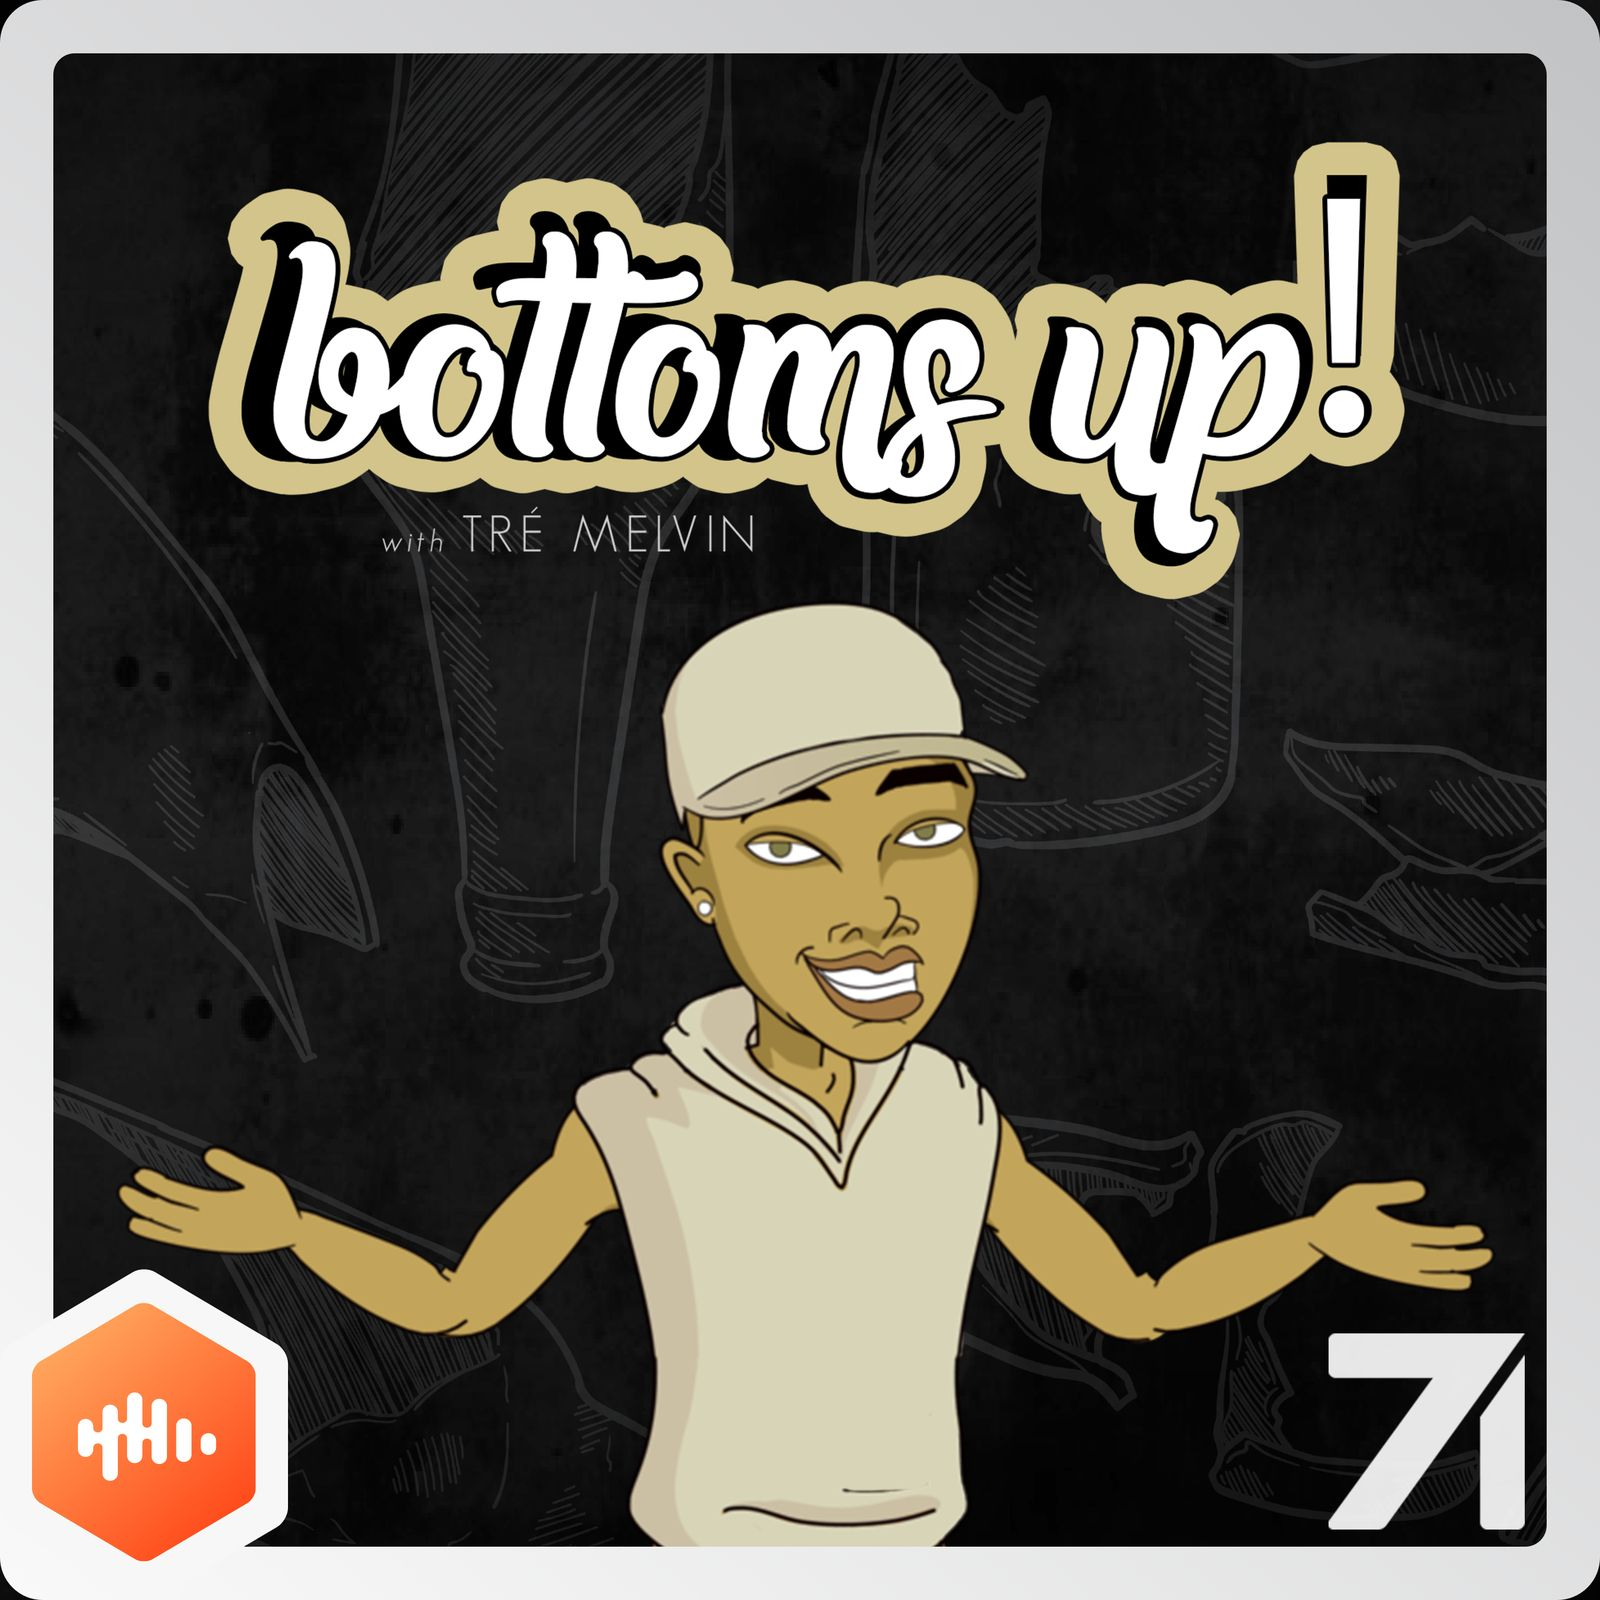 15: Mind Power Patrón (feat. HeFlawless) - Bottoms Up! with Tré Melvin